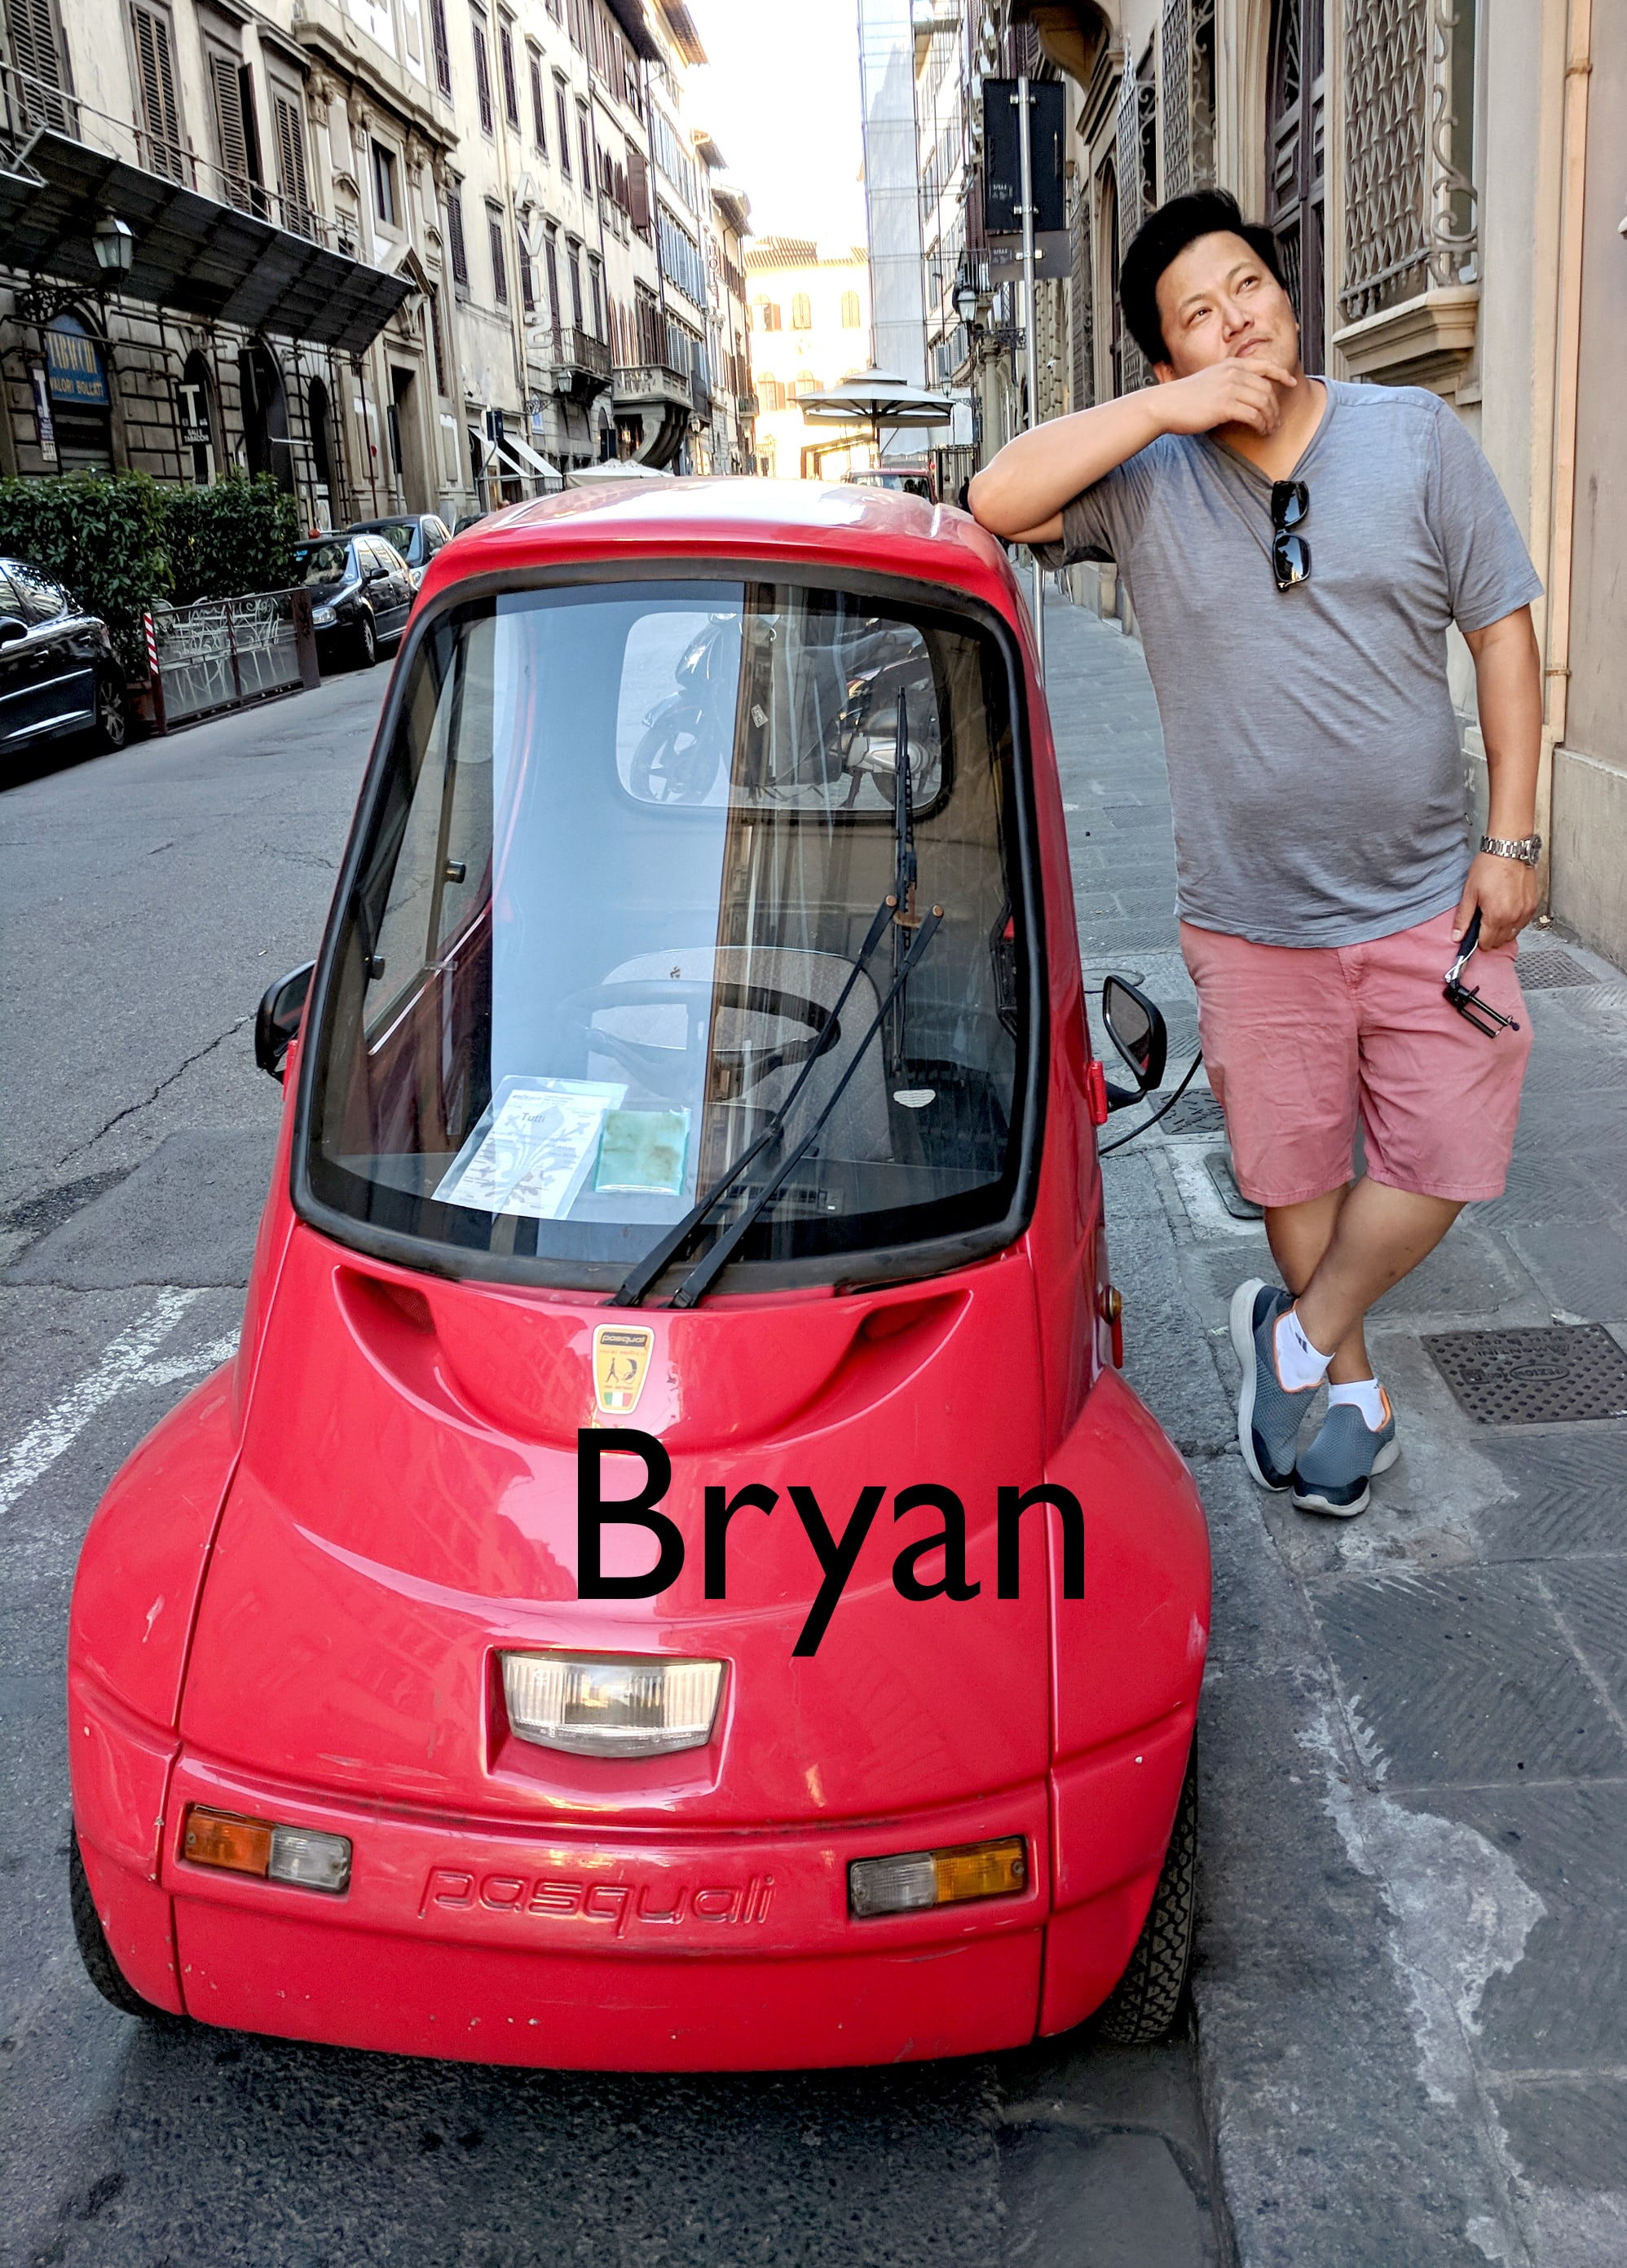 What's up? I'm Bryan